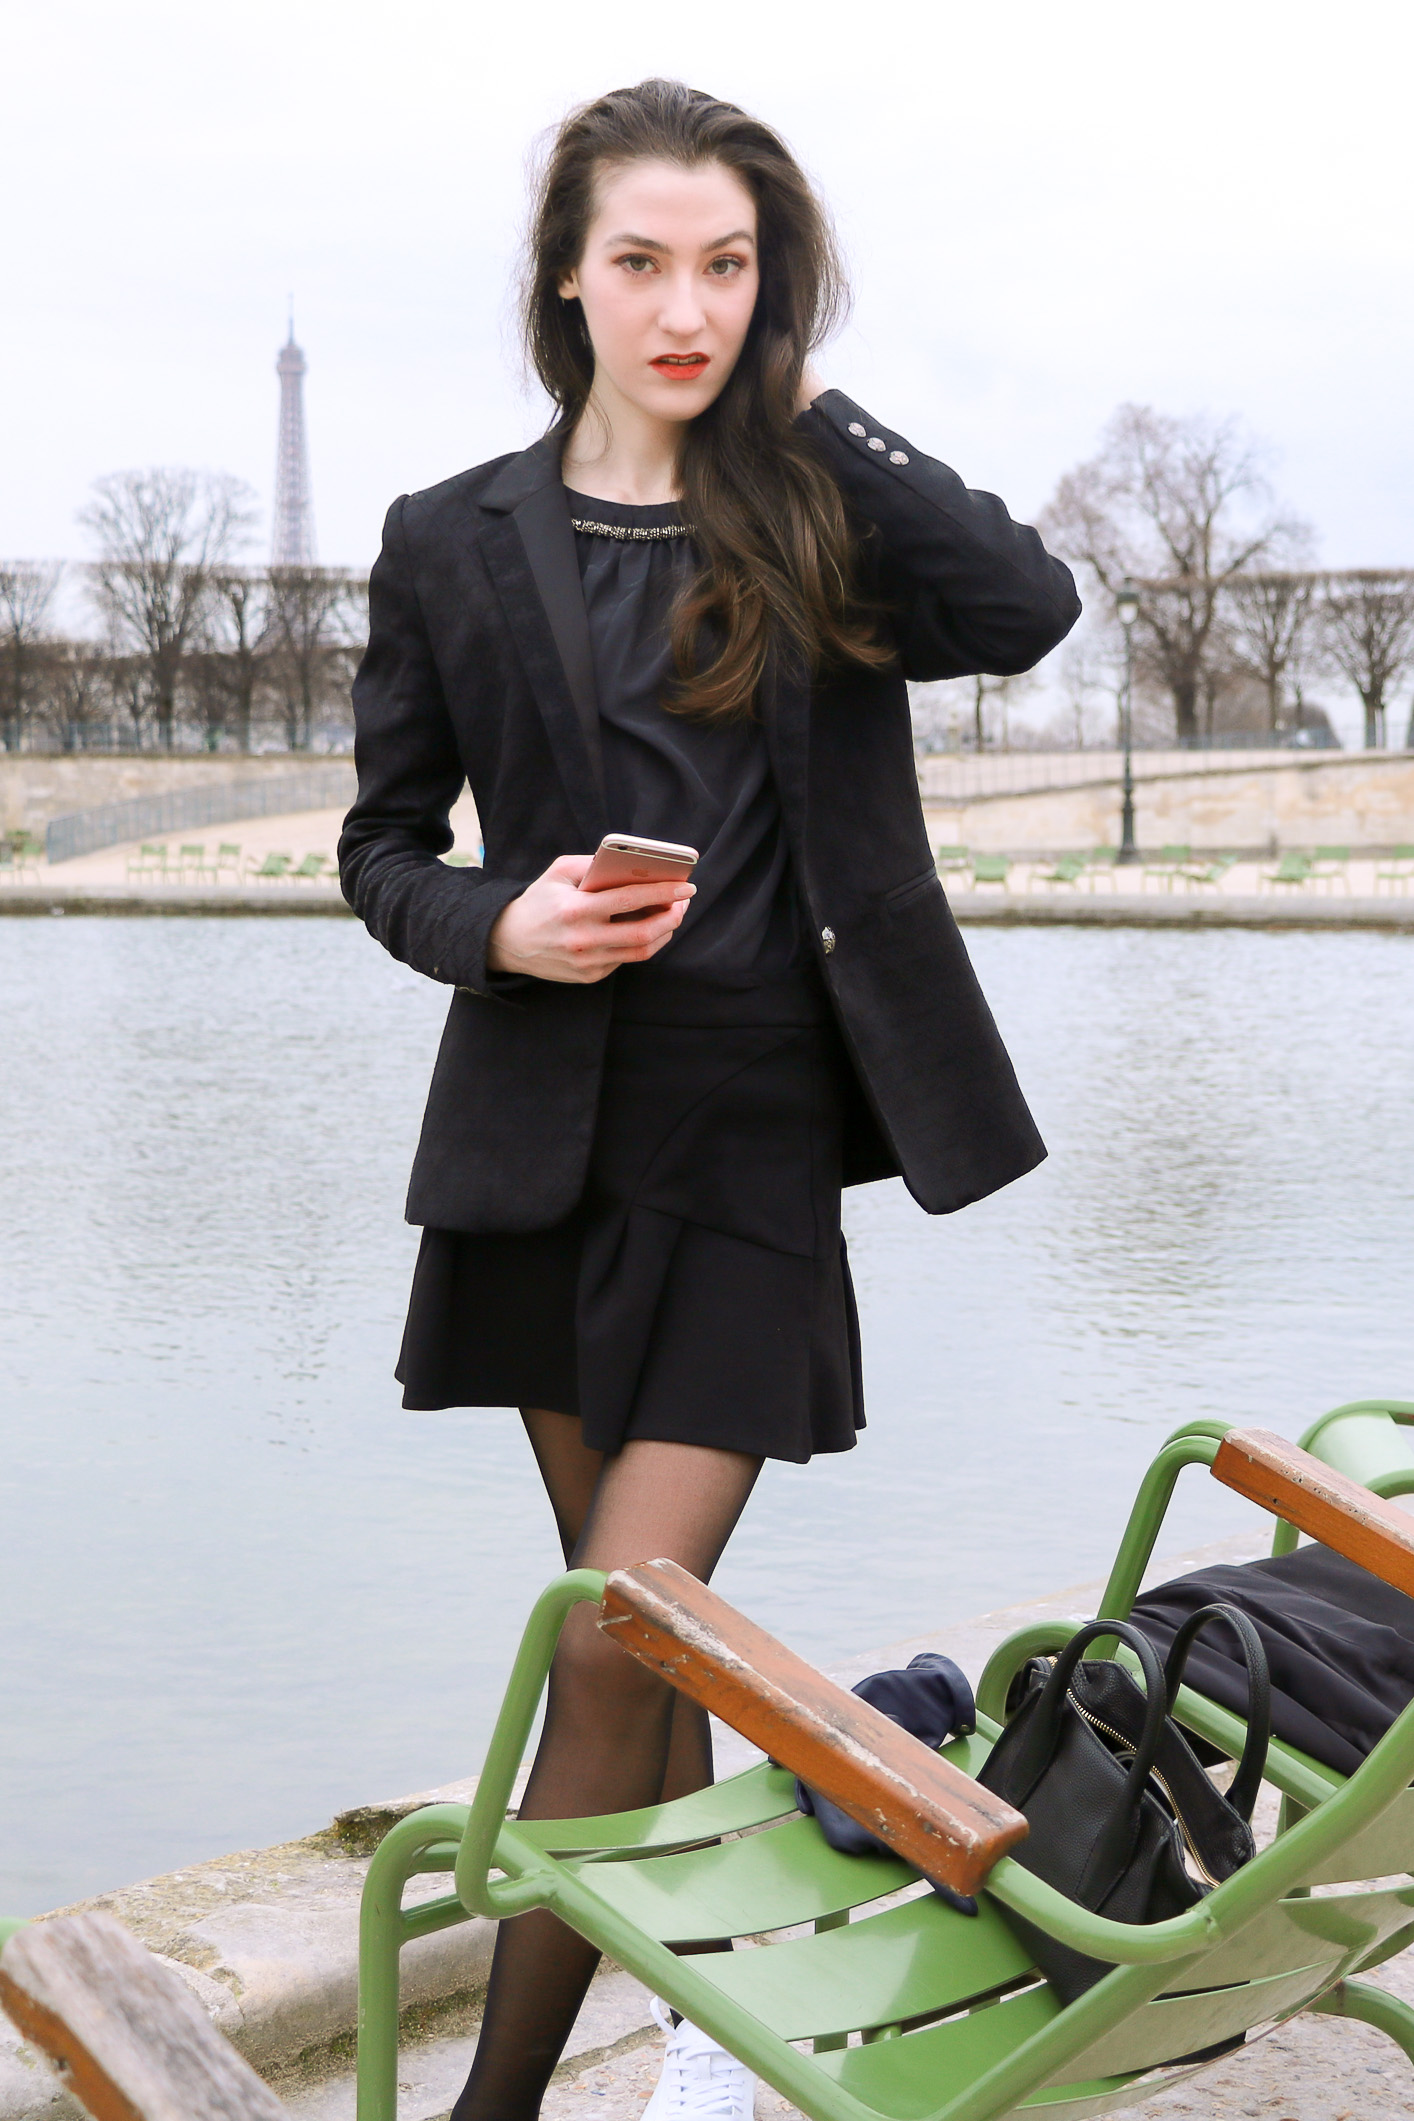 Fashion Blogger Veronika Lipar of Brunette from Wall Street sharing how to wear chic black ruffled mini skirt, sexy black tights and white sneakers like a French